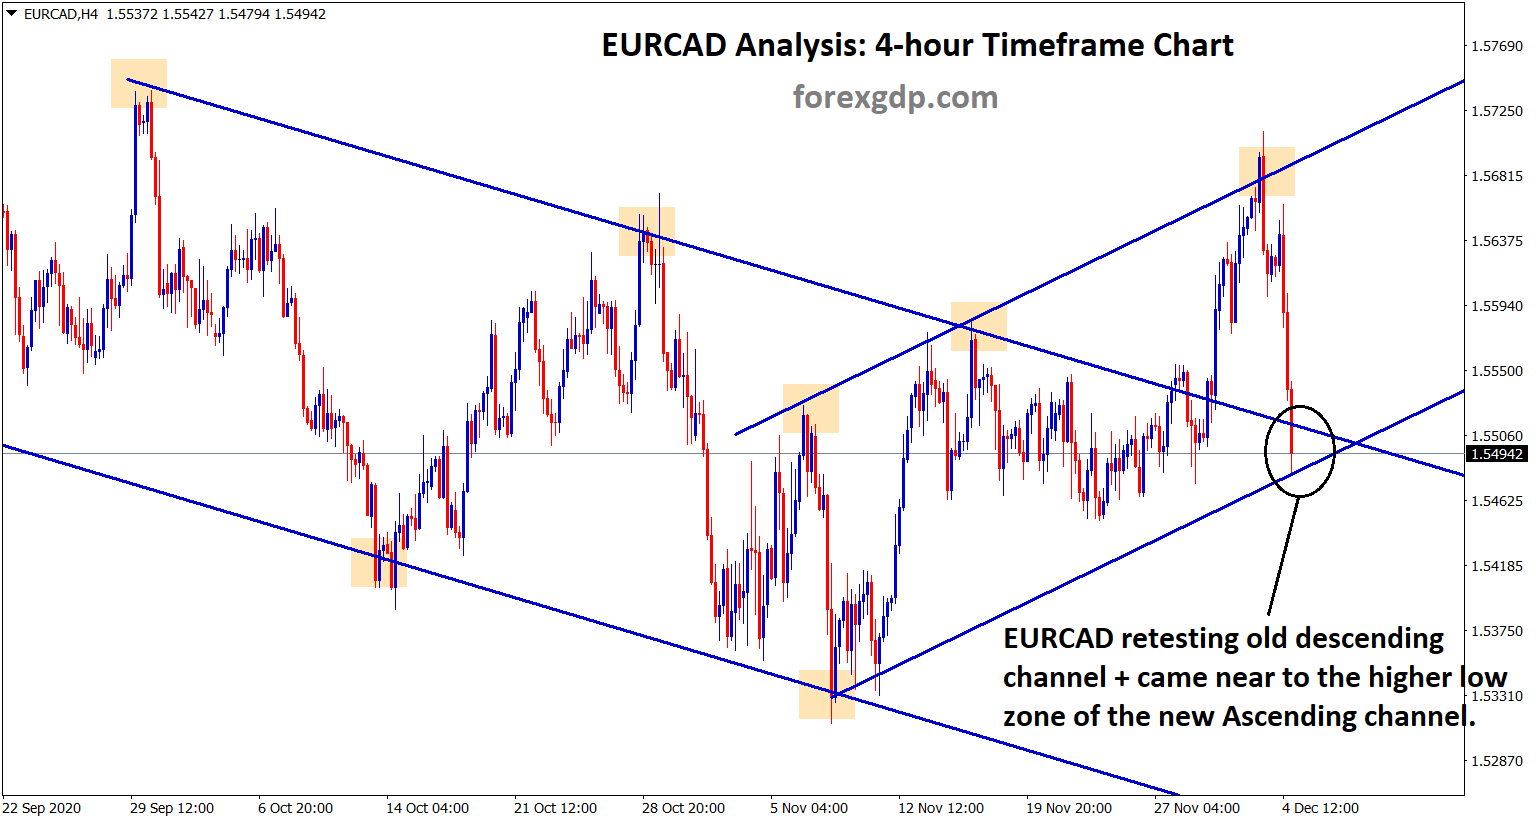 eurcad at the retest zone and higher low of the ascending channel